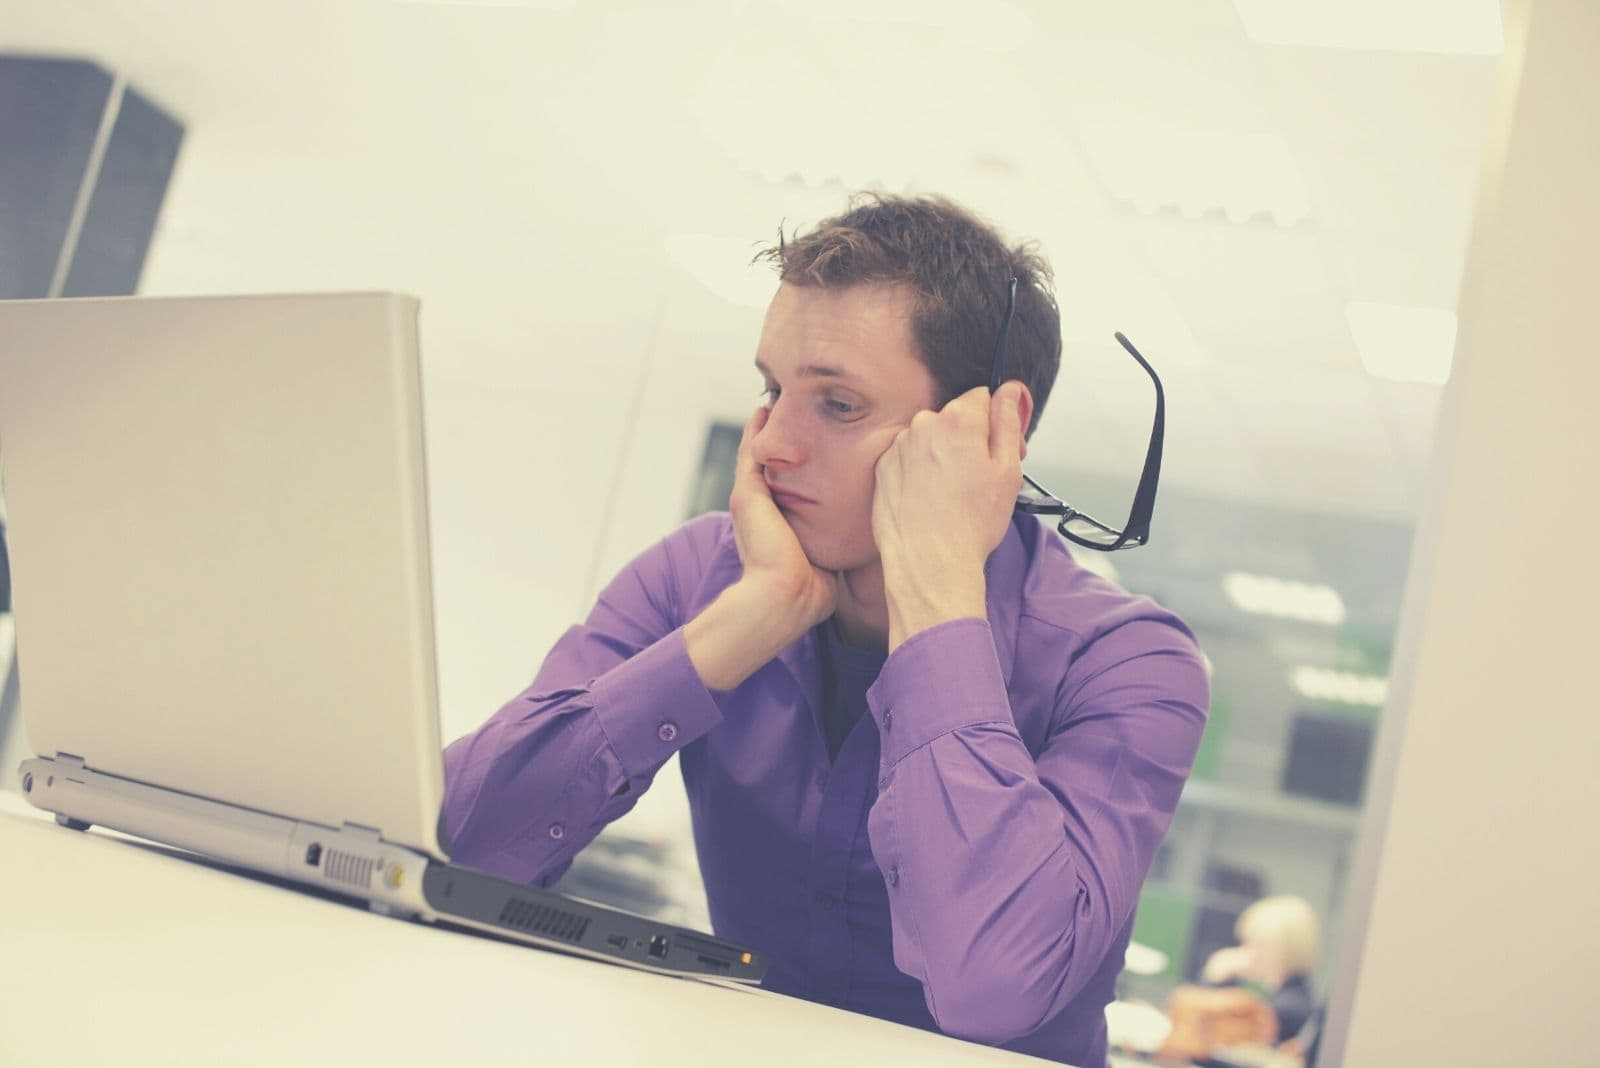 man having problems inside the office staring at his computer